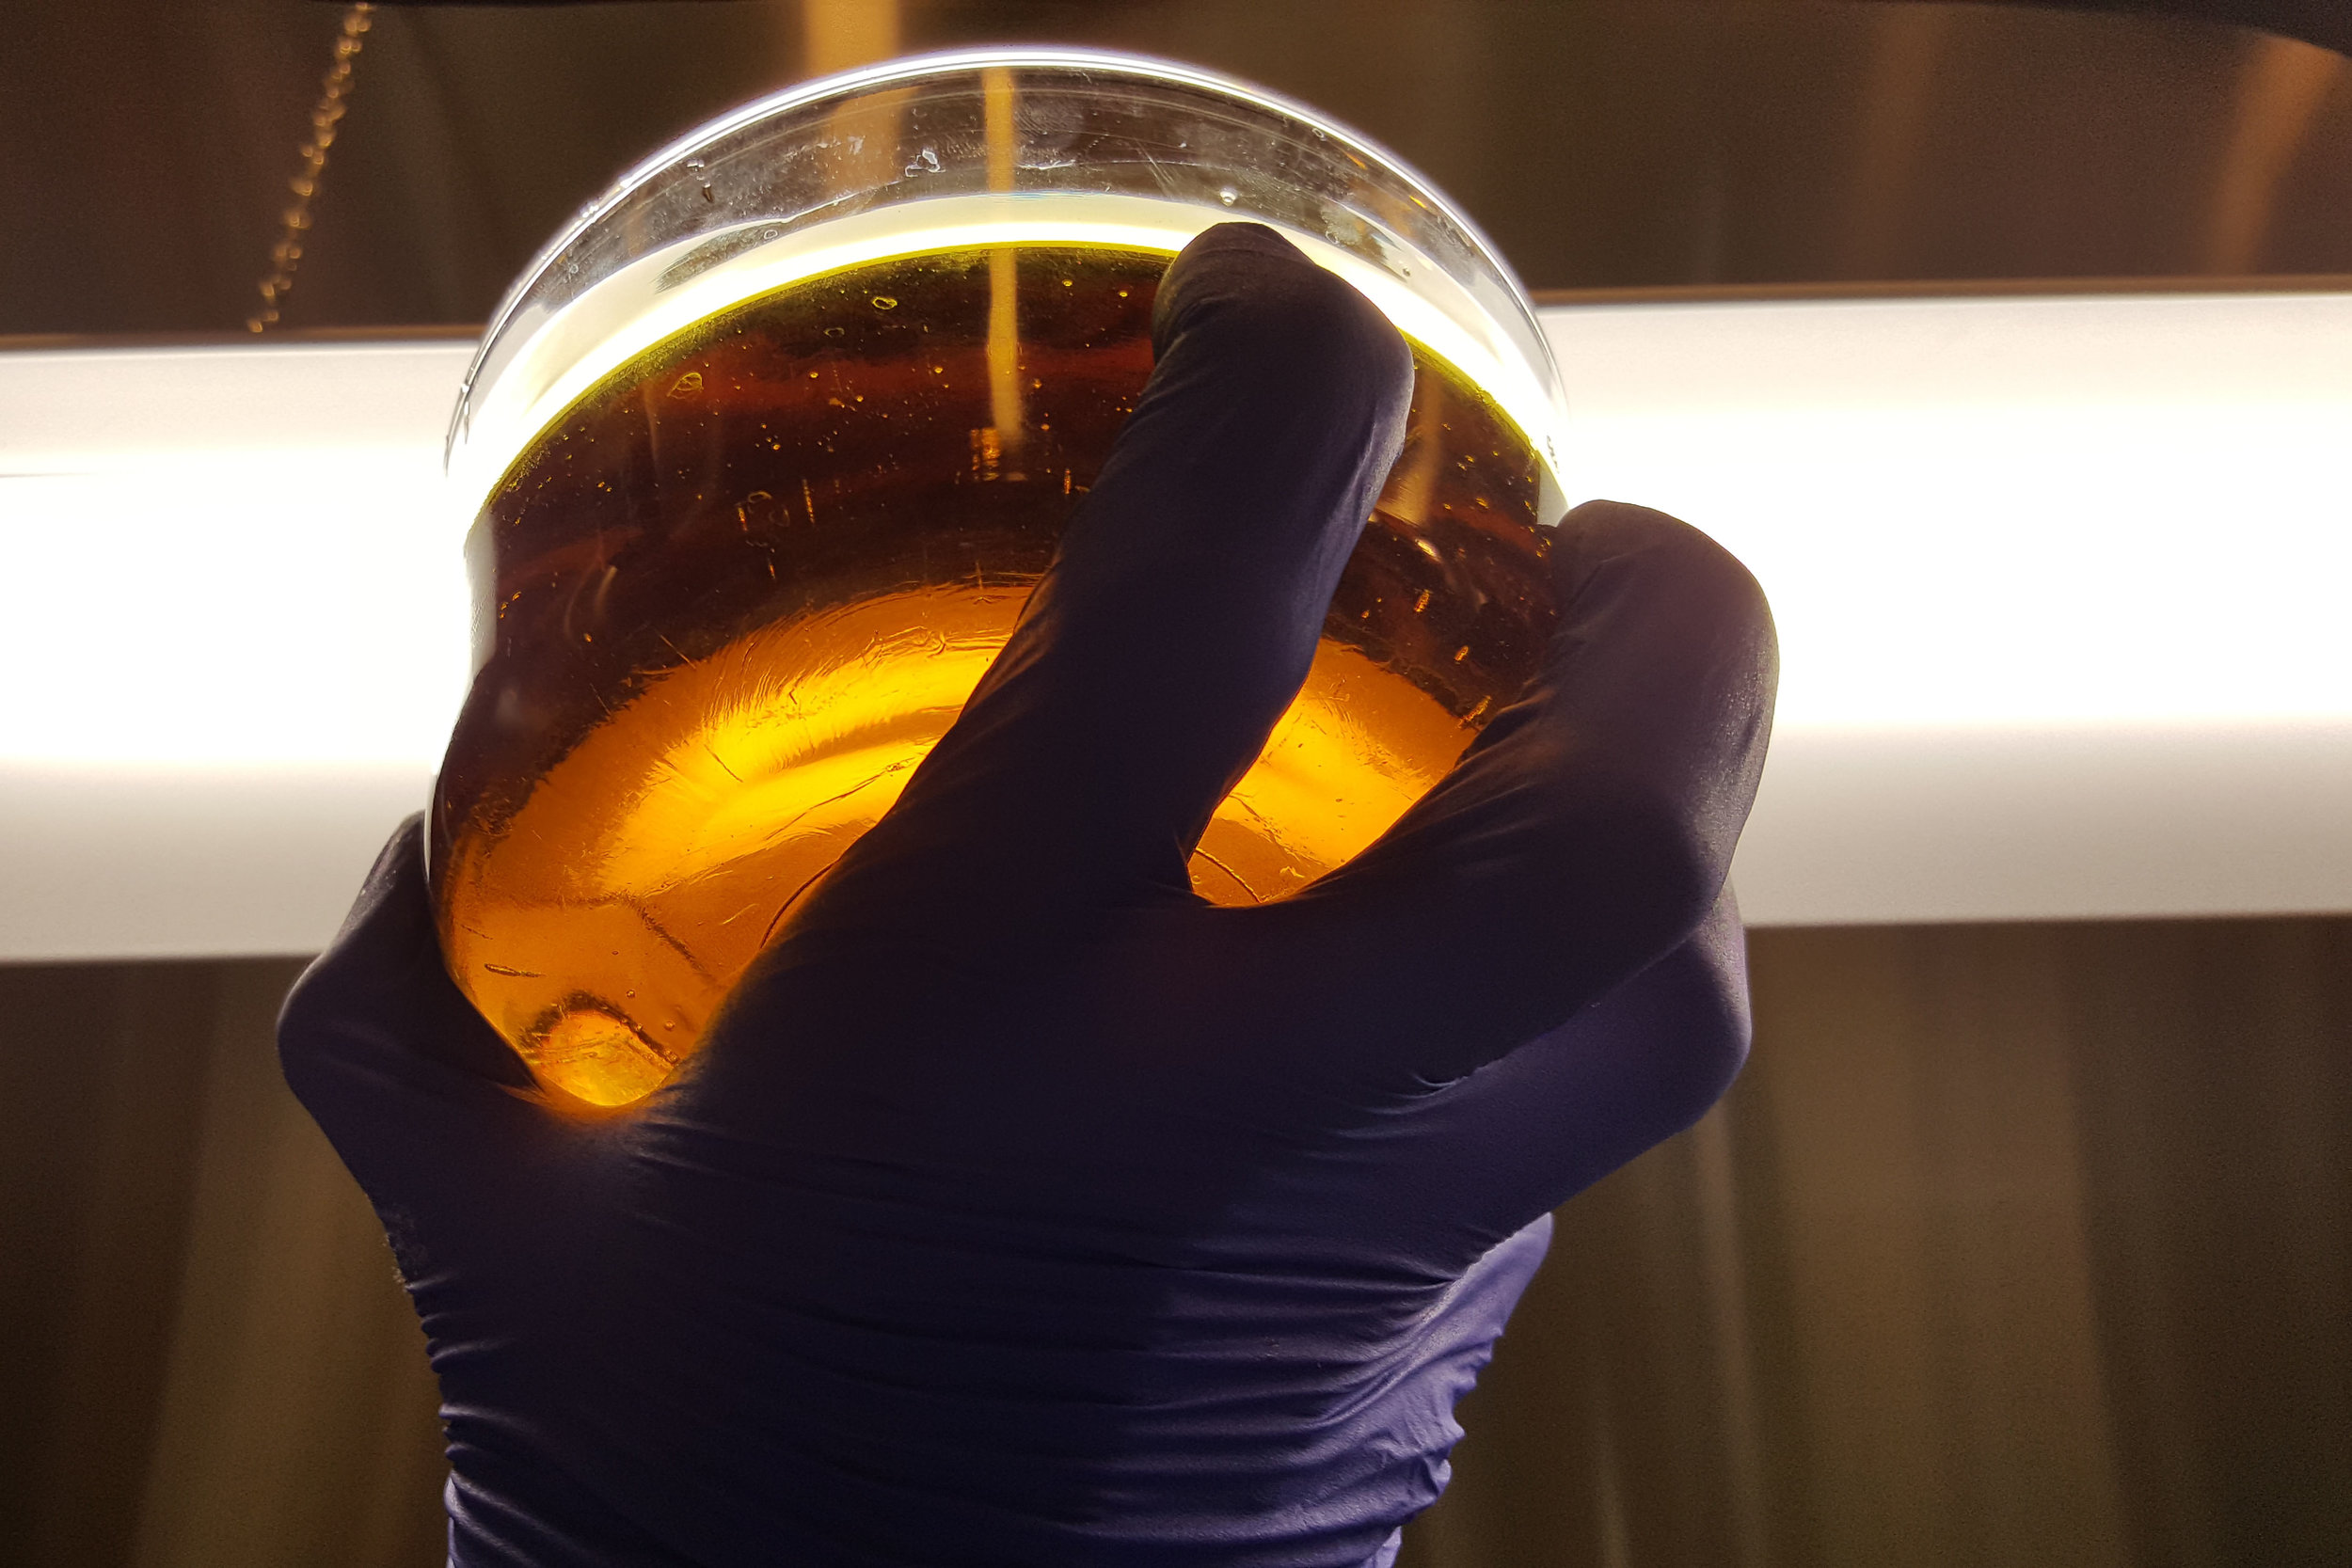 SHORT PATH DISTILLATION    'Decarboxylated' oil undergoes this process to create purified distillate